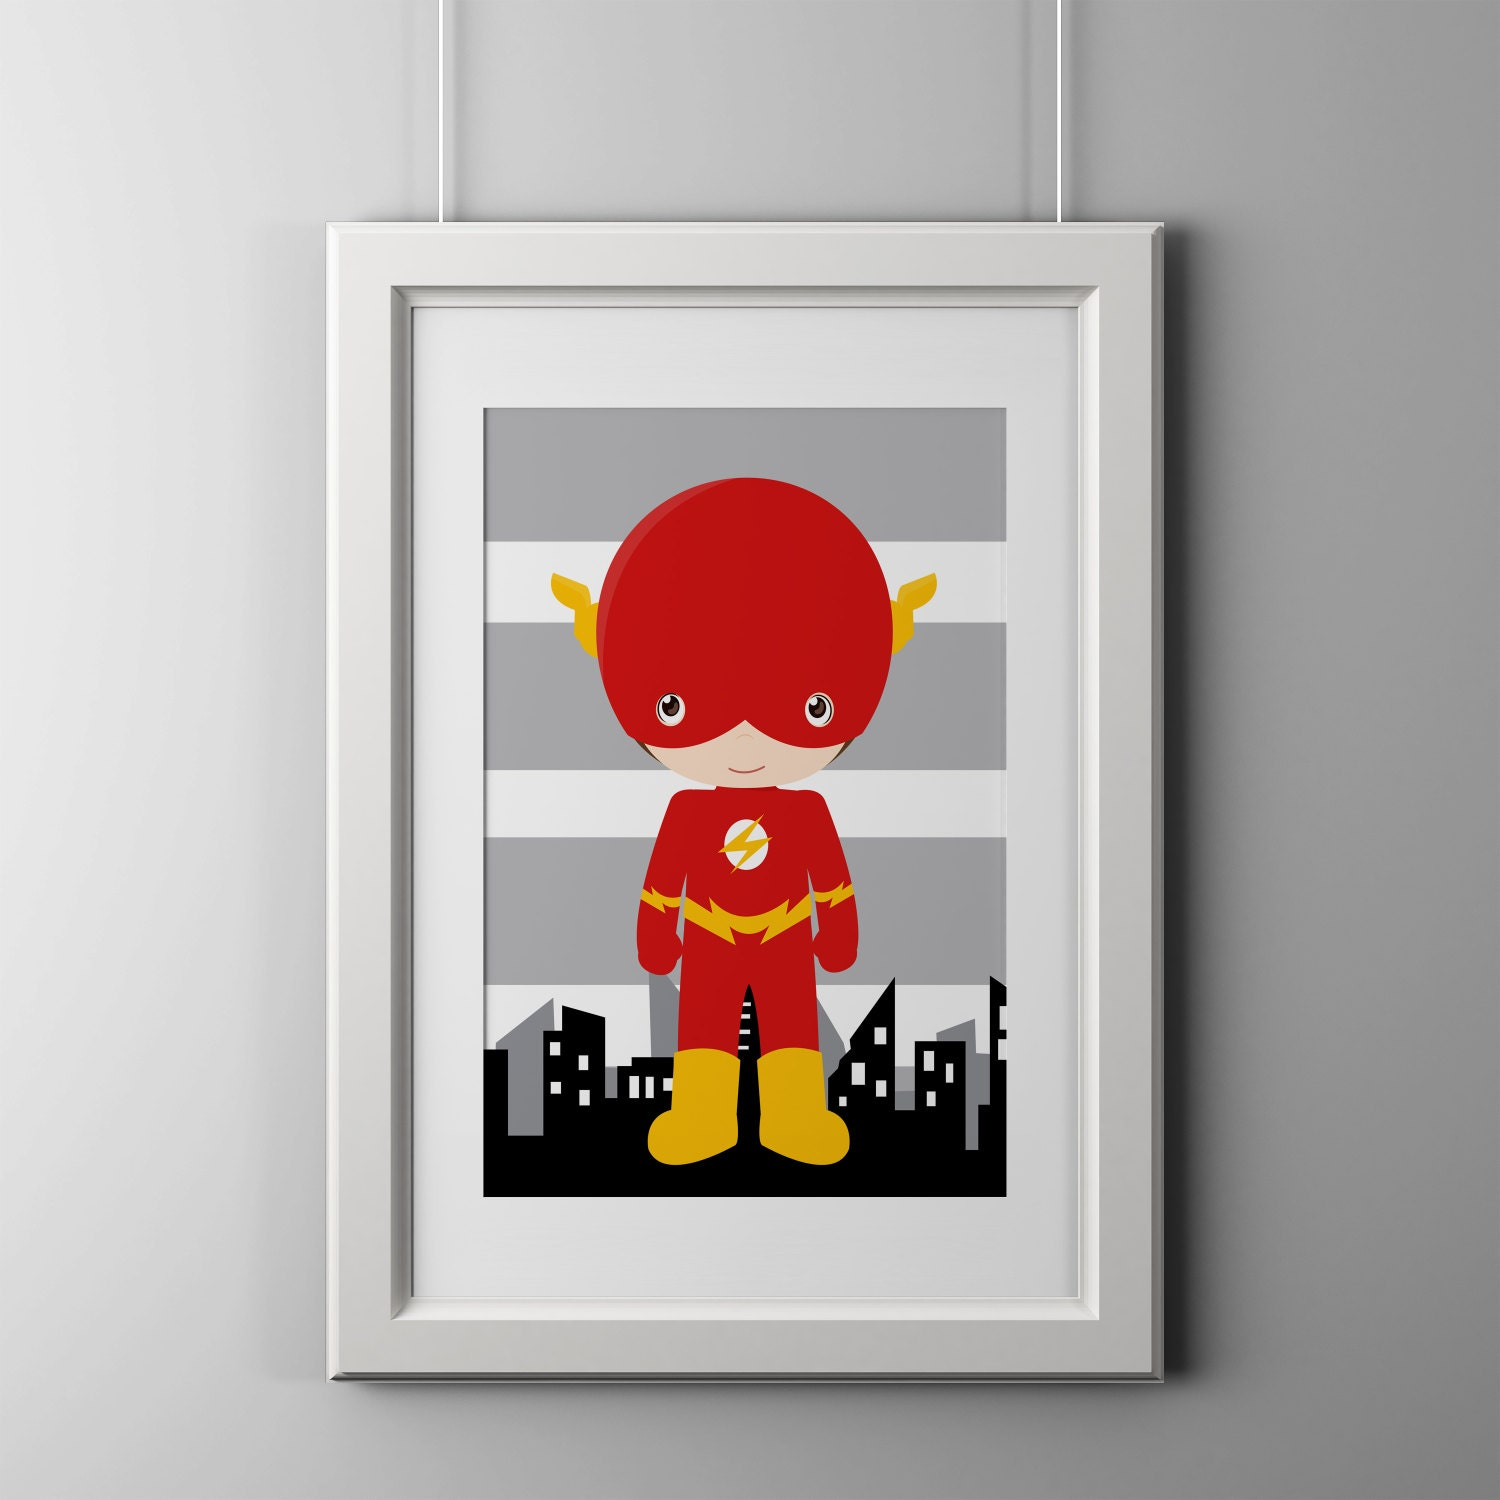 flash superhero wall decor prints superhero wall art 8x10. Black Bedroom Furniture Sets. Home Design Ideas